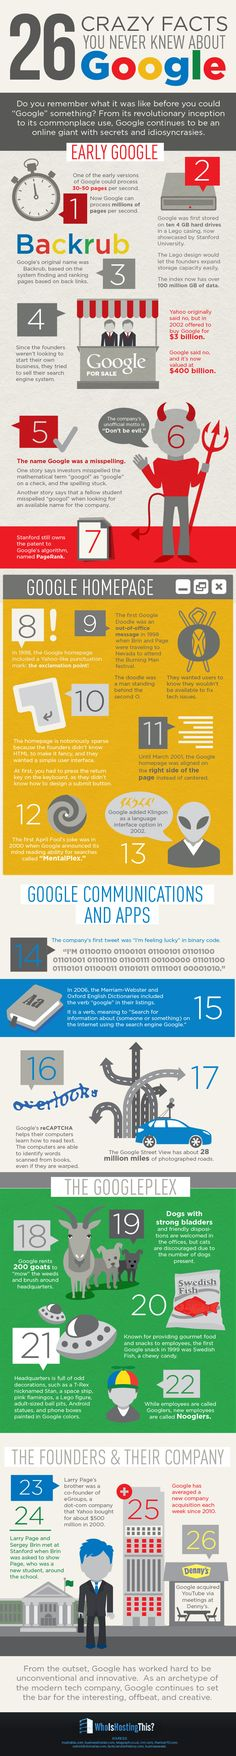 26-Crazy-Facts you never knew about Google